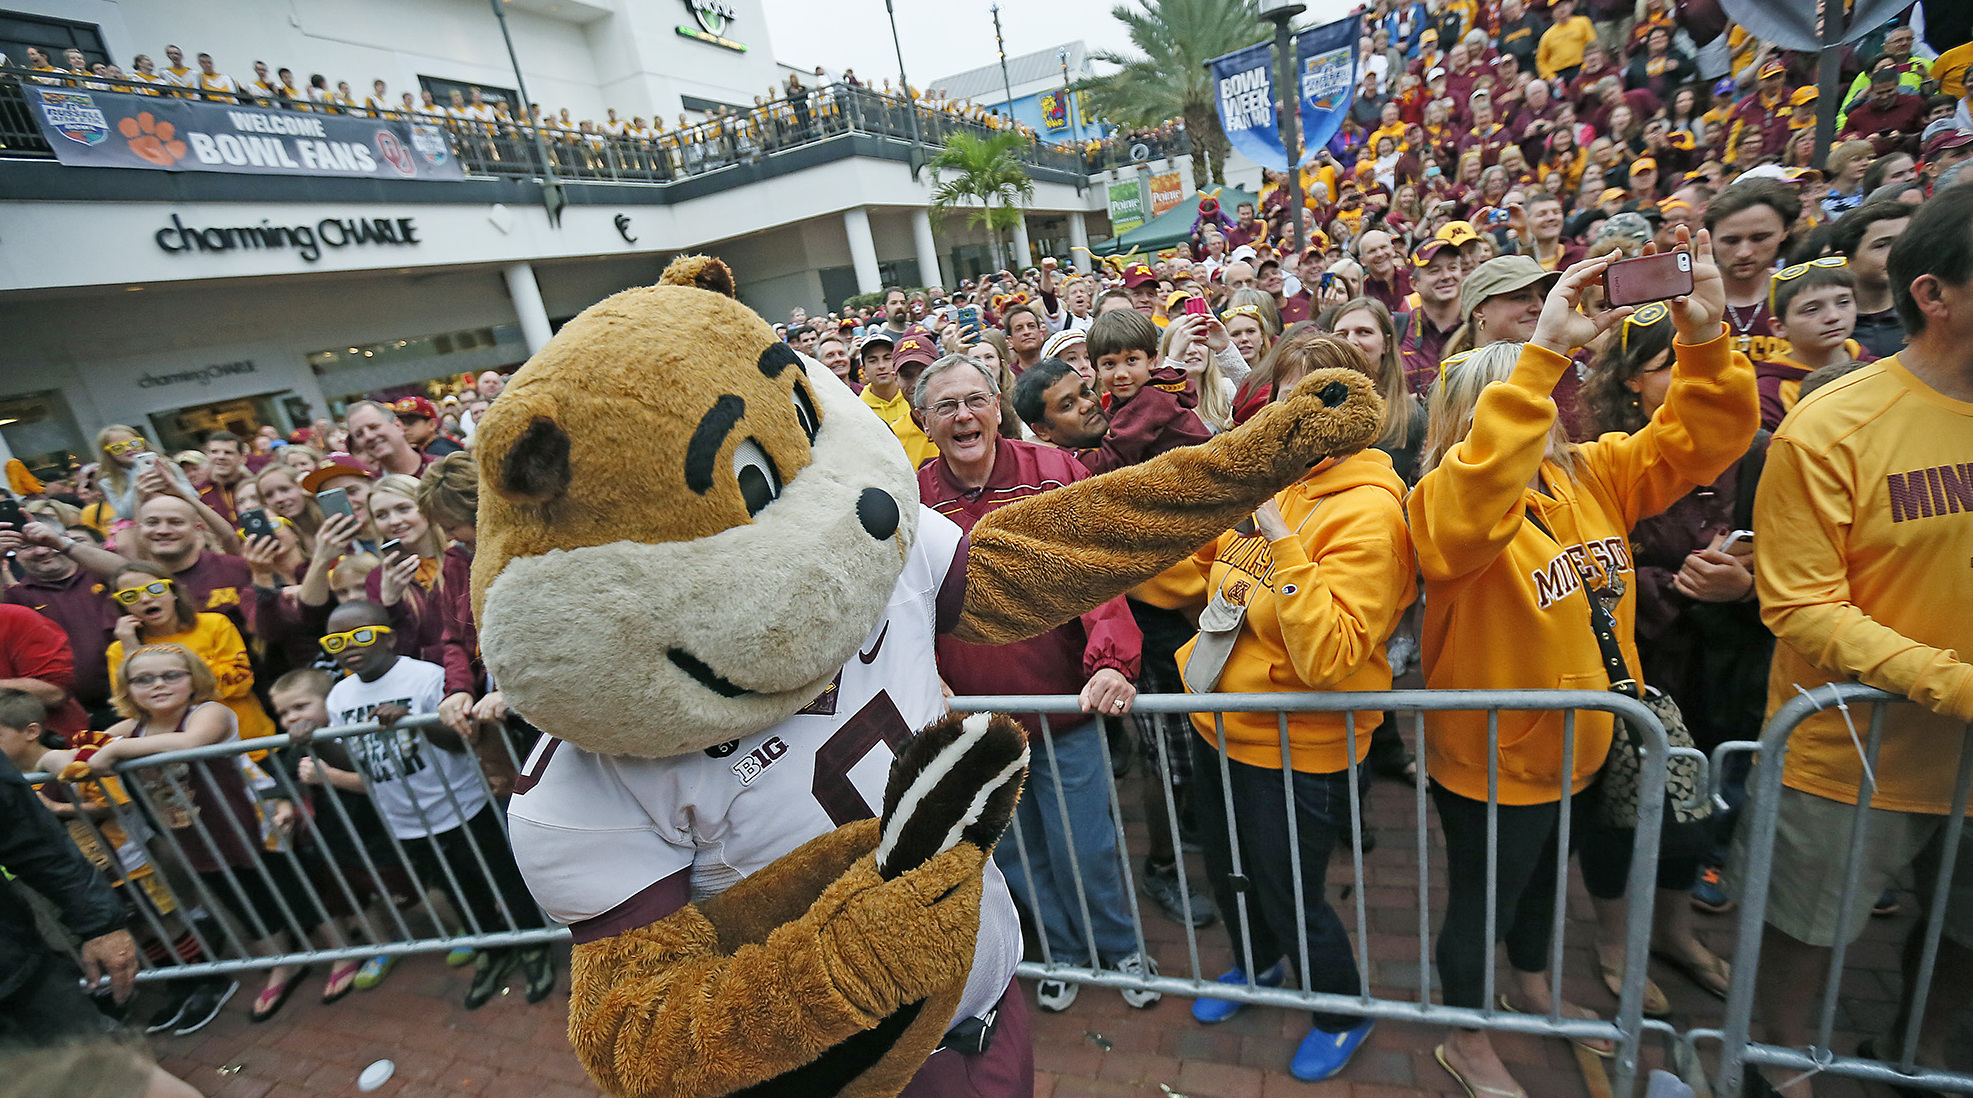 Holiday vacation plans? Take a look at the Gophers bowl game forecast